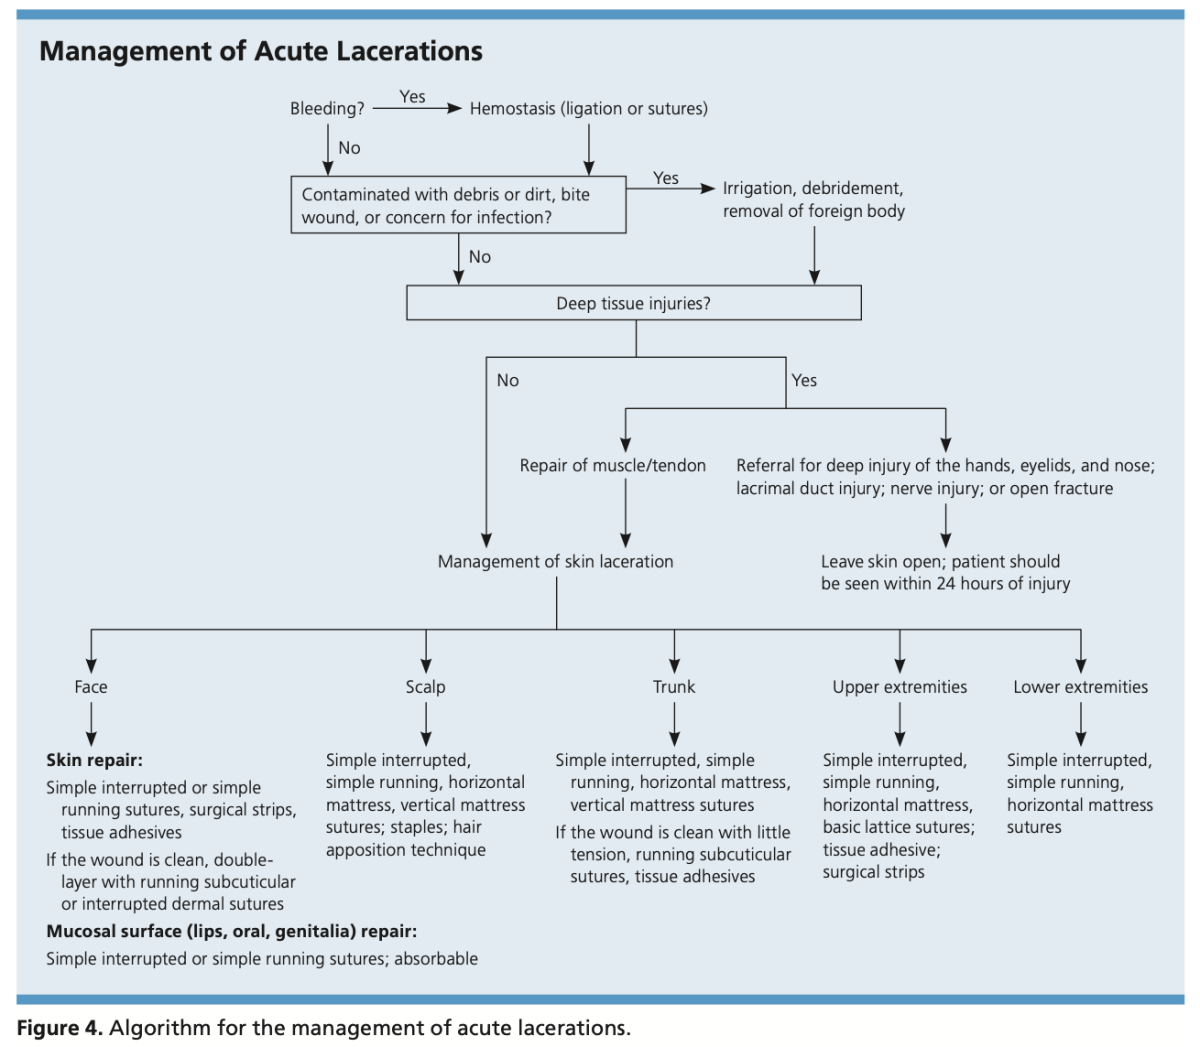 Management, Evaluation and Repair of Laceration